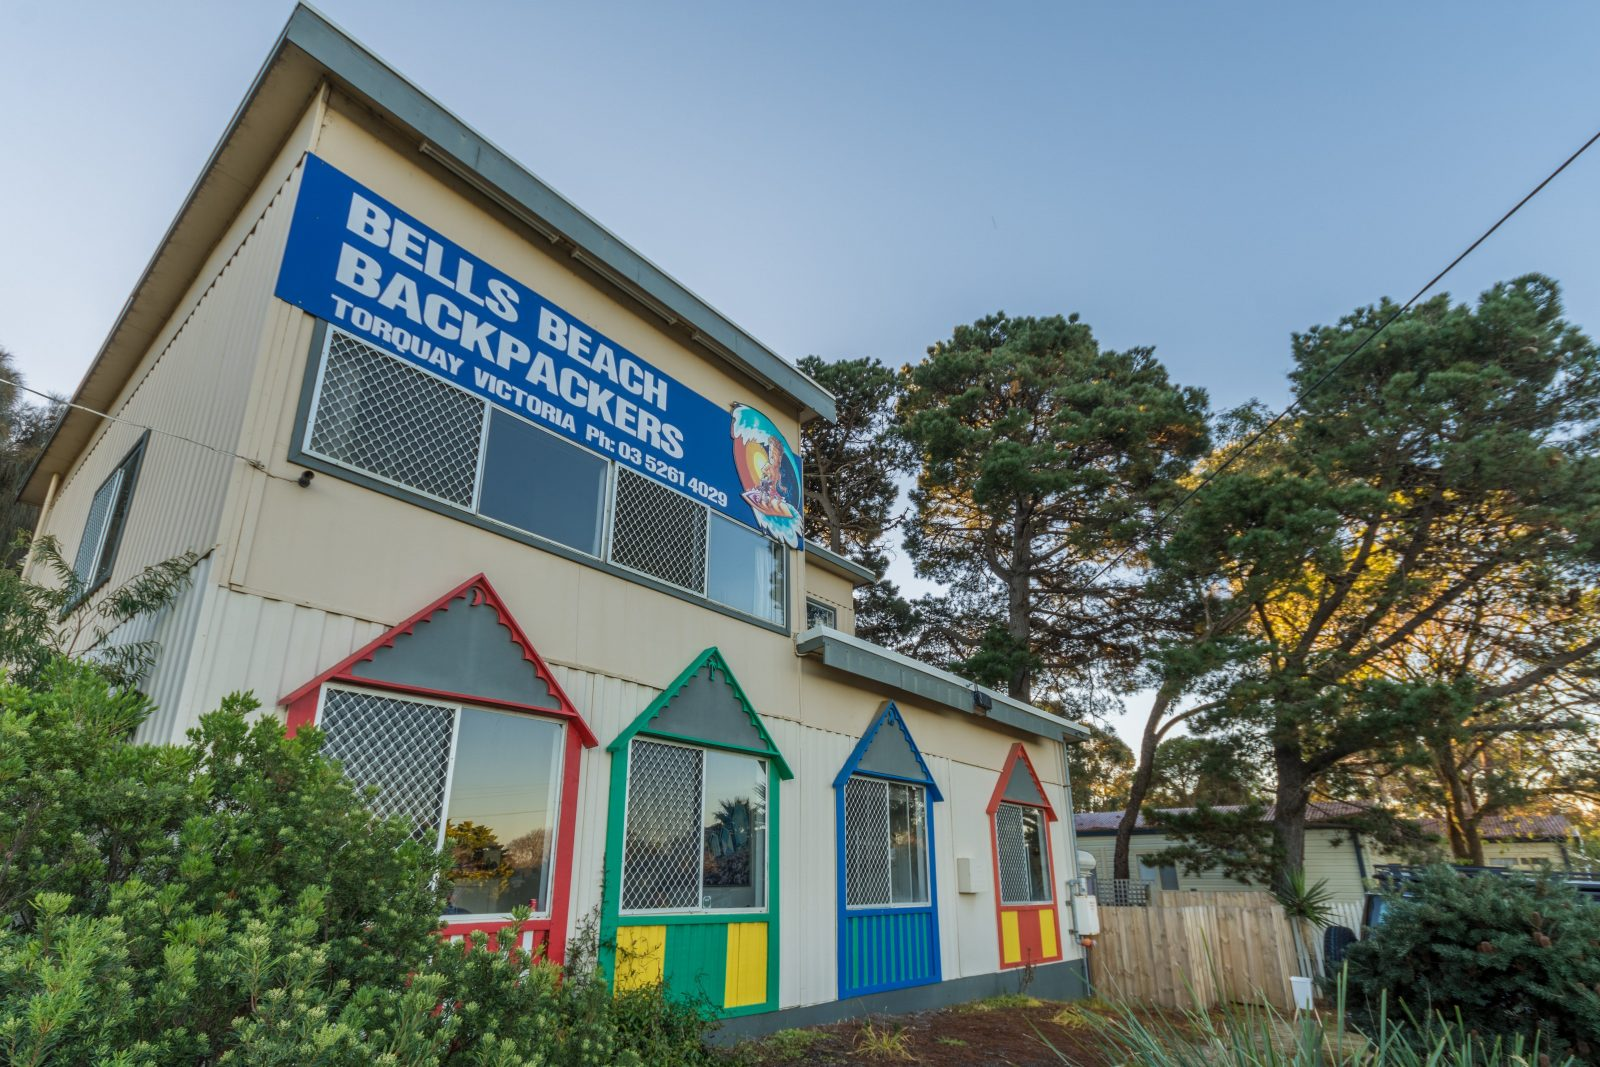 The coloured frames depict the Bathing boxes that were once located on Torquay Front Beach.